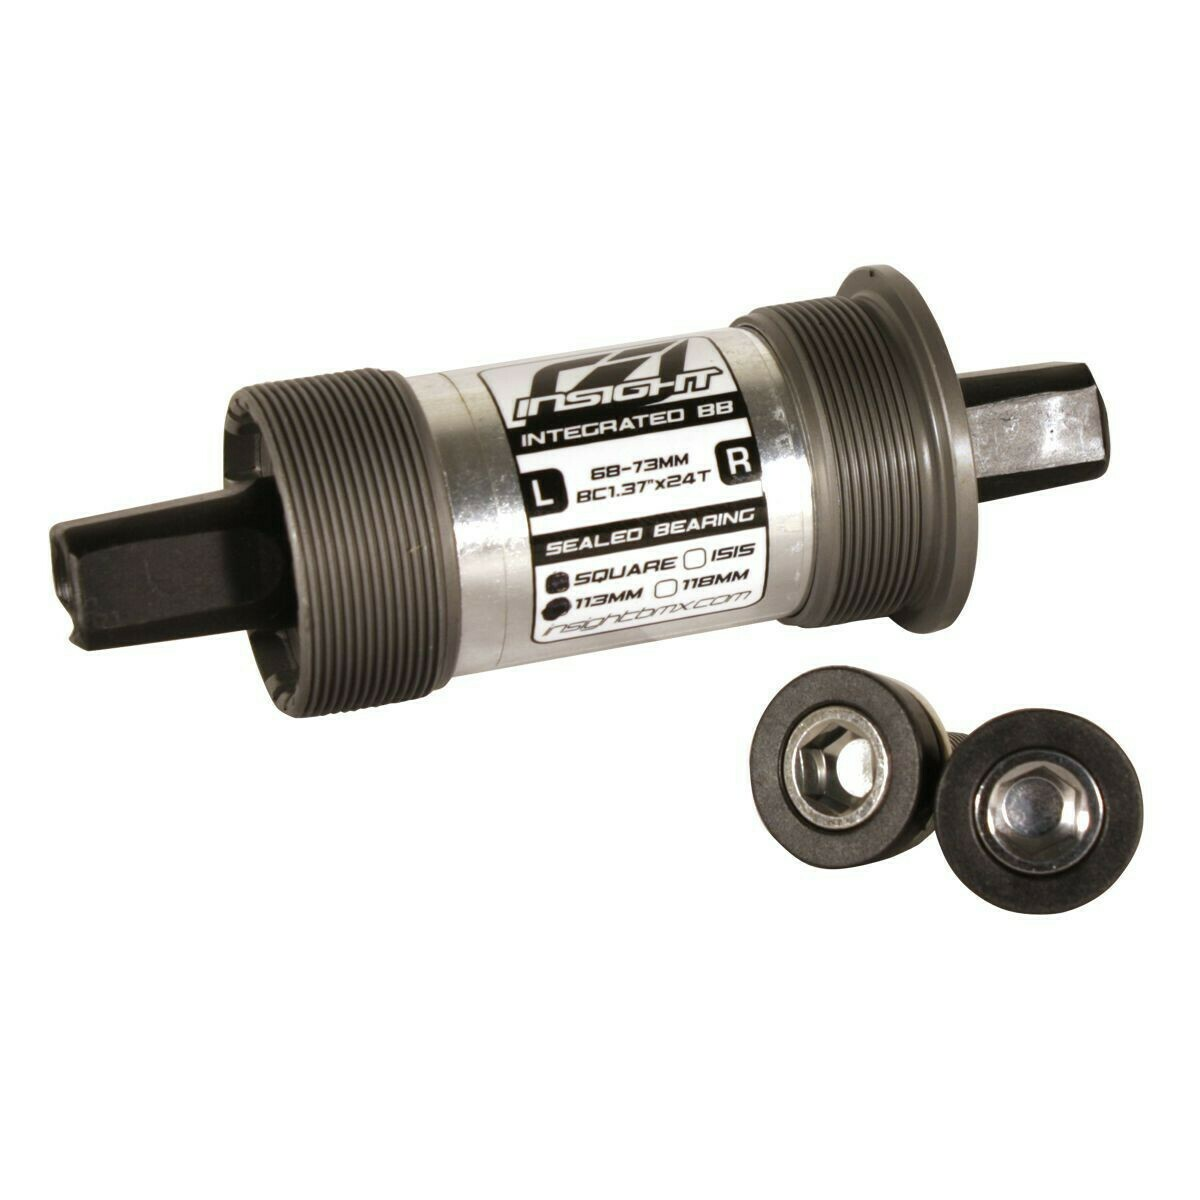 Insight Square Tapered Bottom Bracket